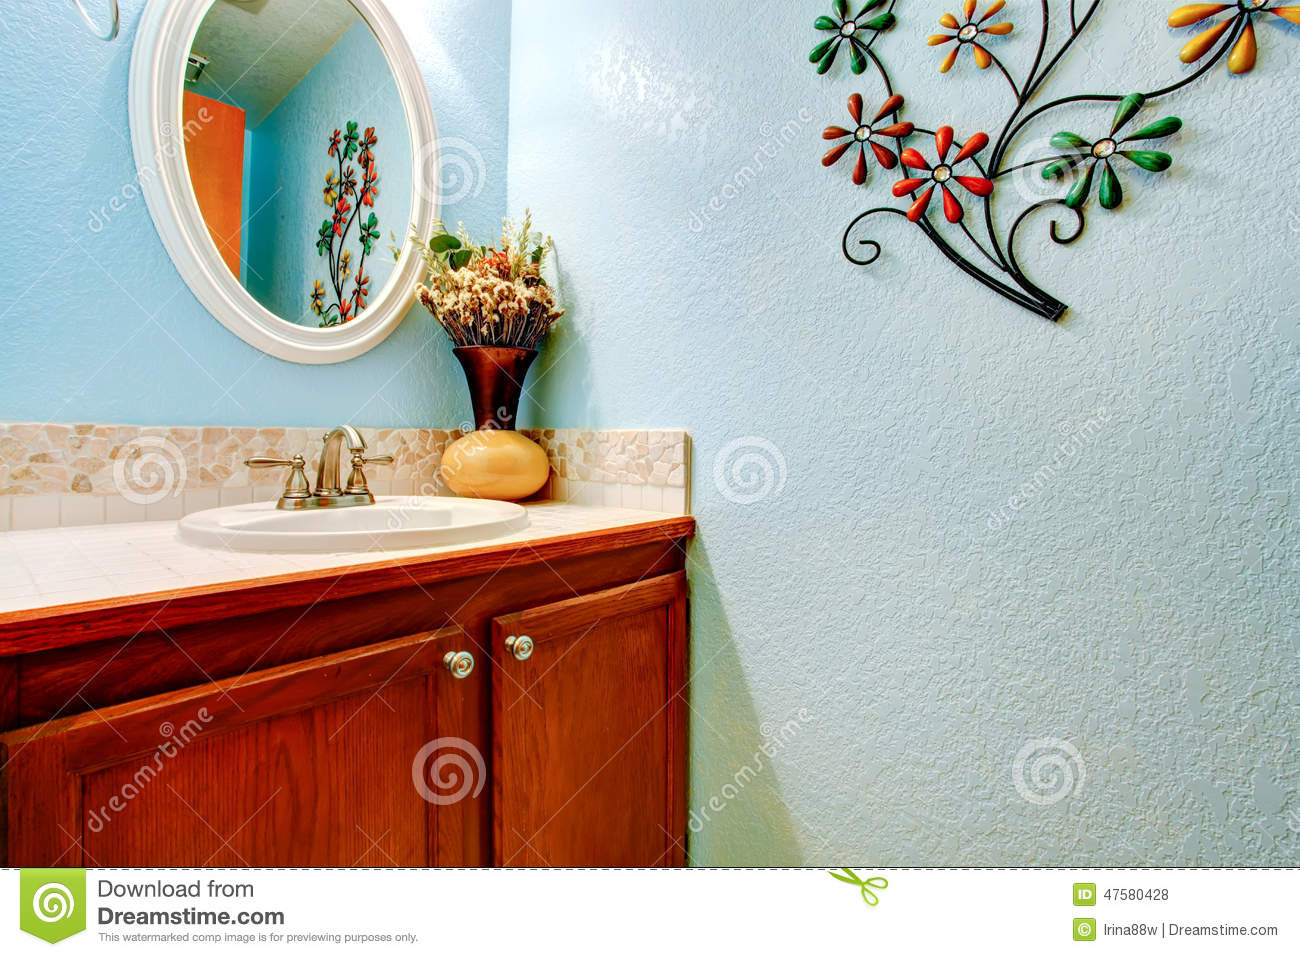 royaltyfree stock photo download wooden vanity cabinet in light blue bathroom